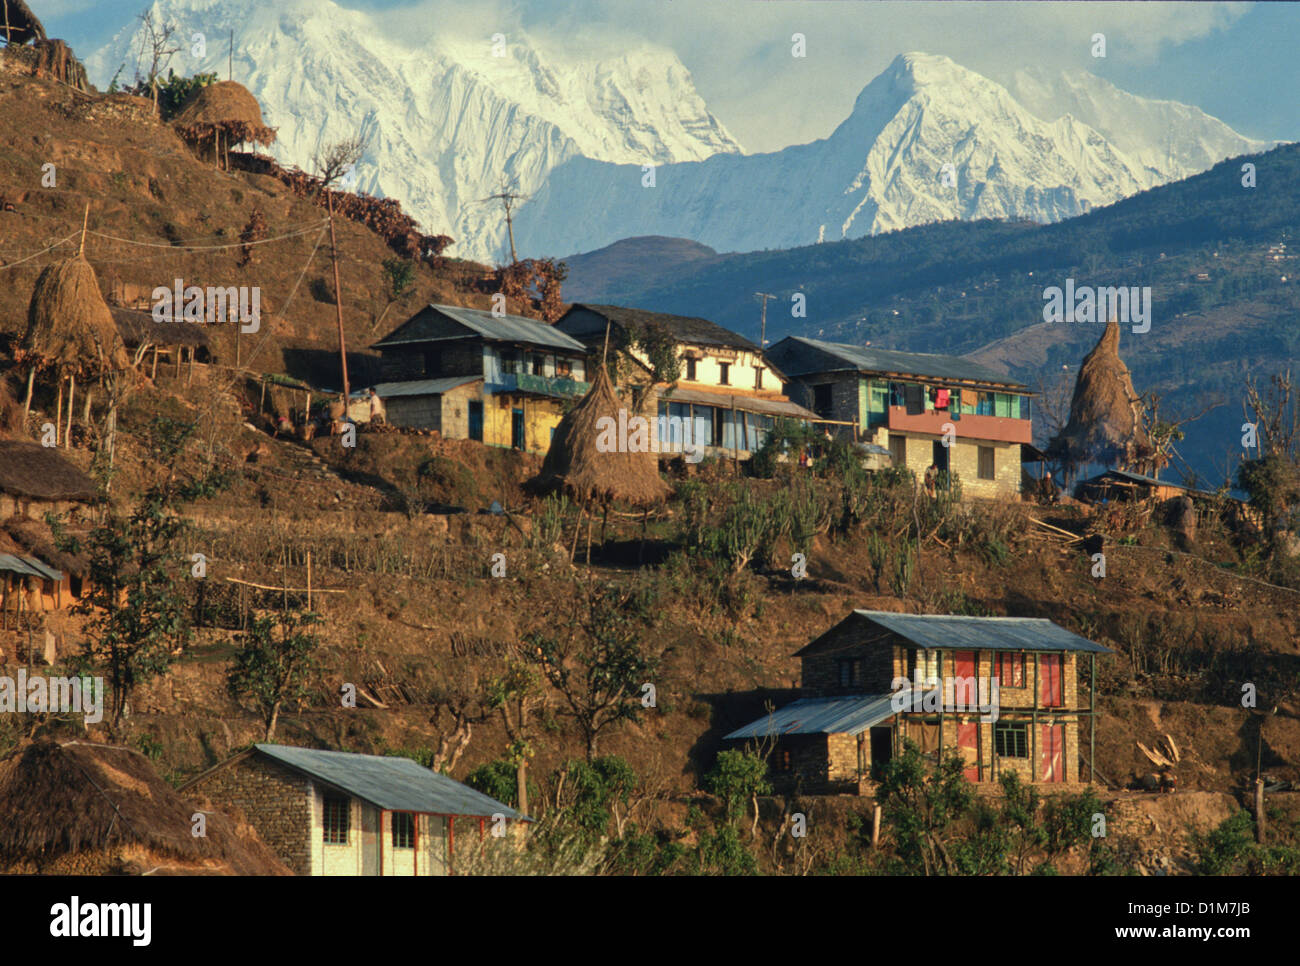 Houses On A Hillside In The Himalayan Region Near Pokhara